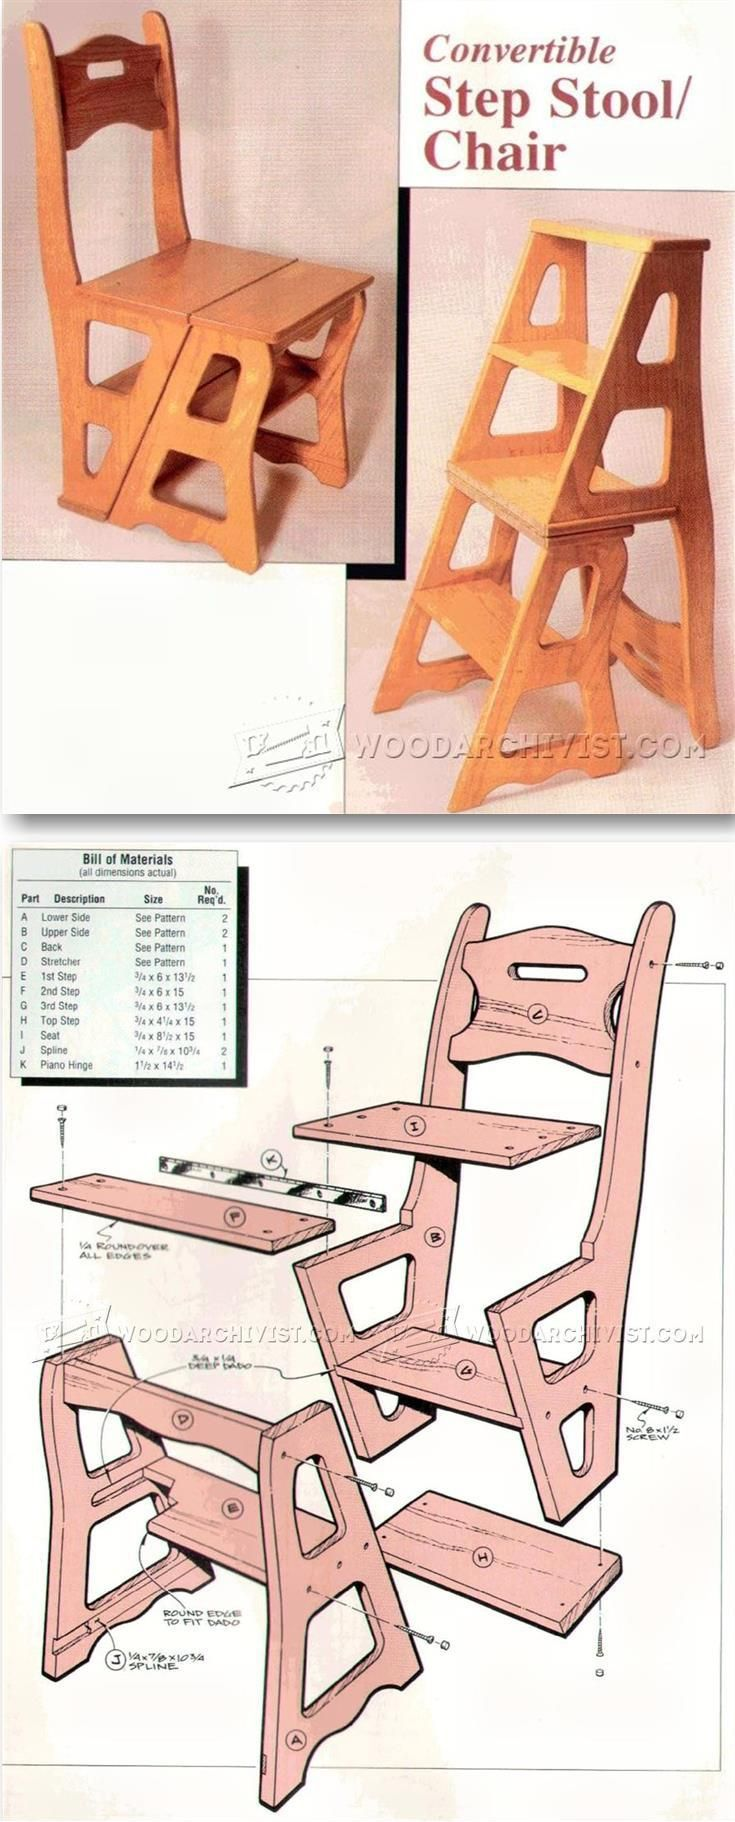 Wooden dollhouse step foot stool wood footstool stepstool furniture - Chair Step Stool Plans Furniture Plans And Projects Woodarchivist Com